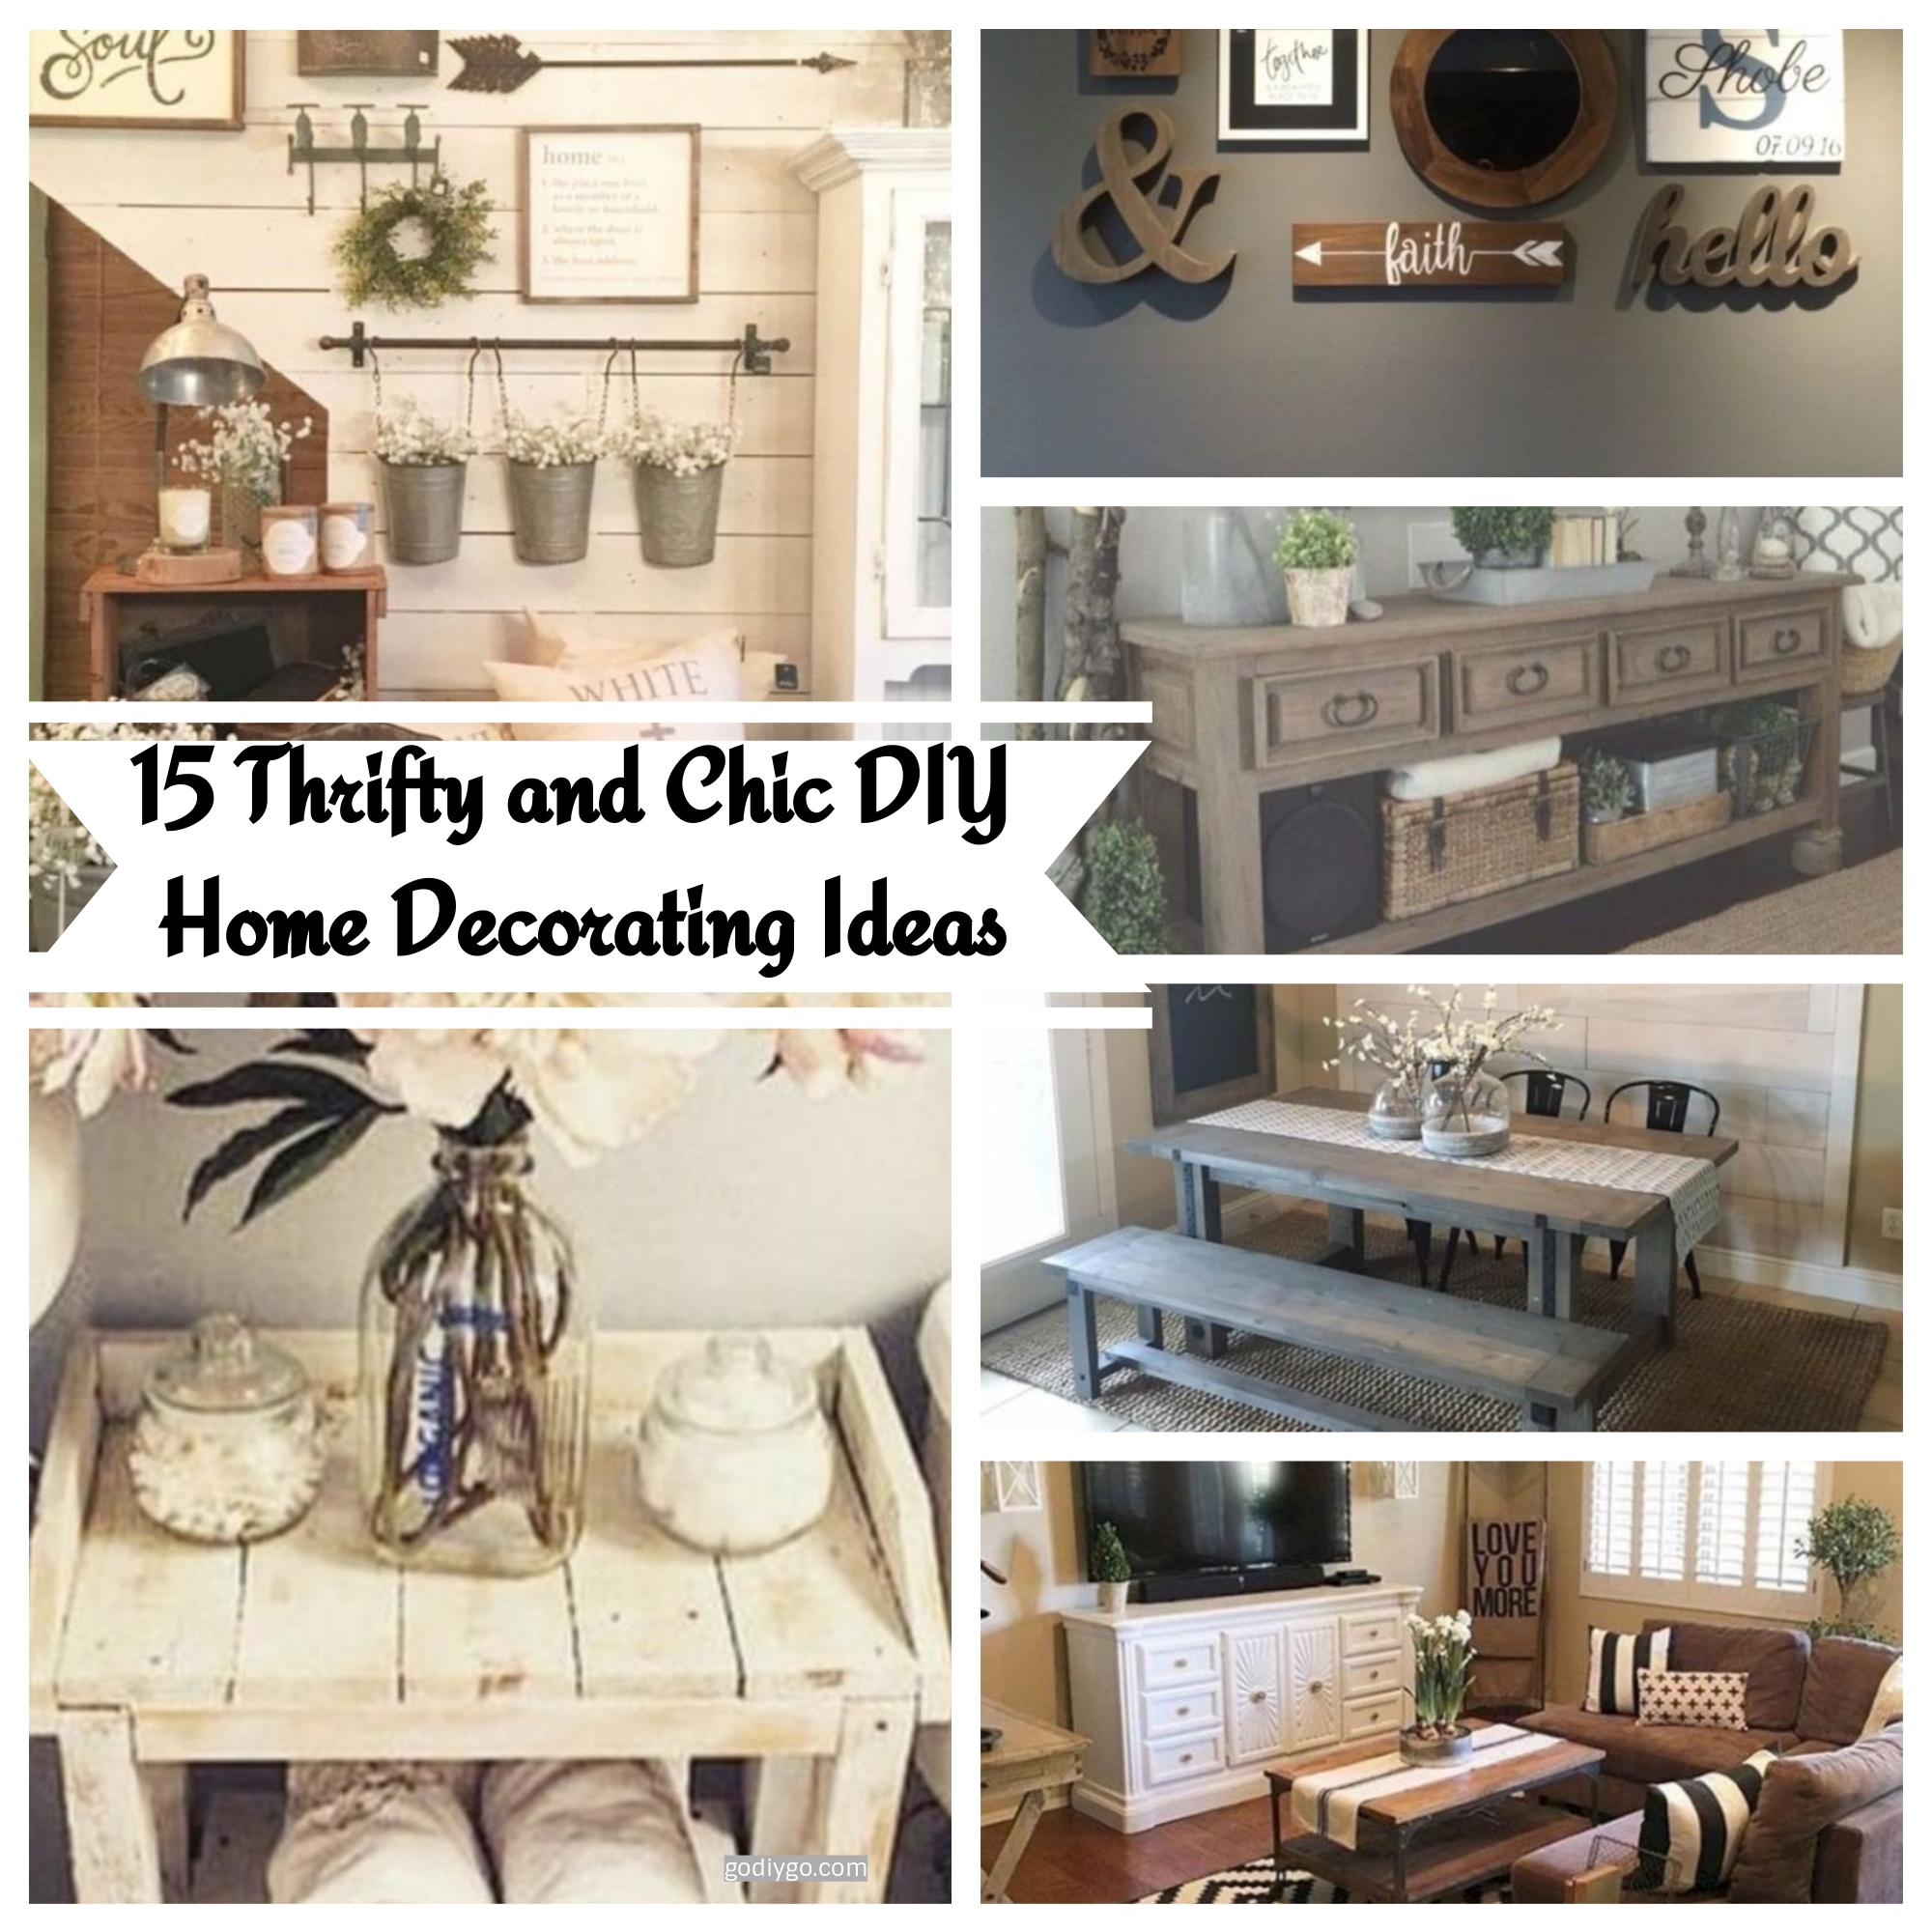 New Home Decorating Tips: 15 Thrifty And Chic DIY Home Decorating Ideas